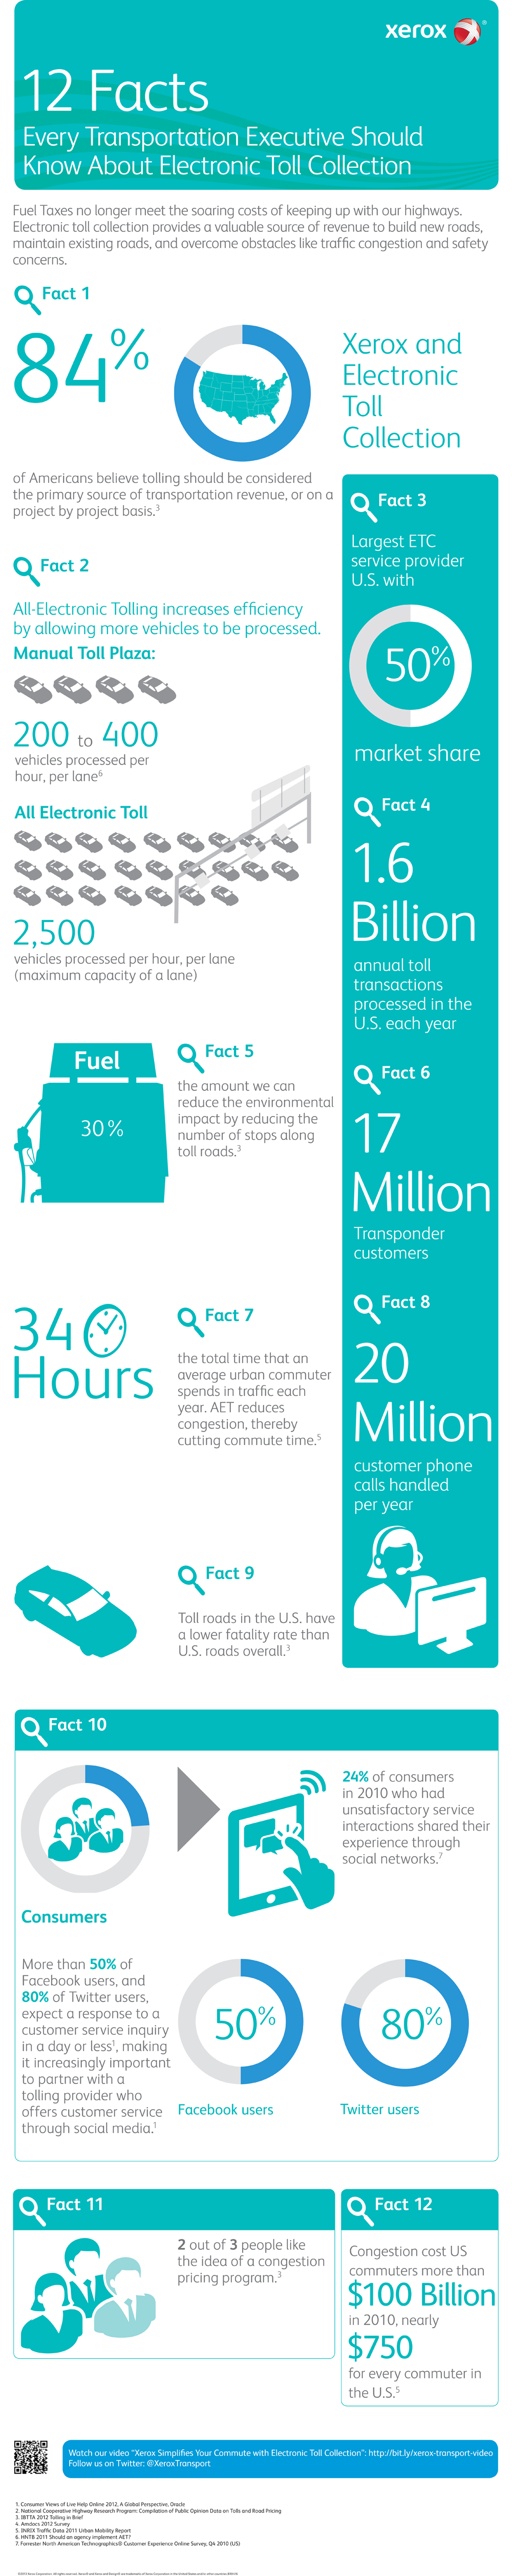 12 Facts about Electronic Toll Collection - Infographic